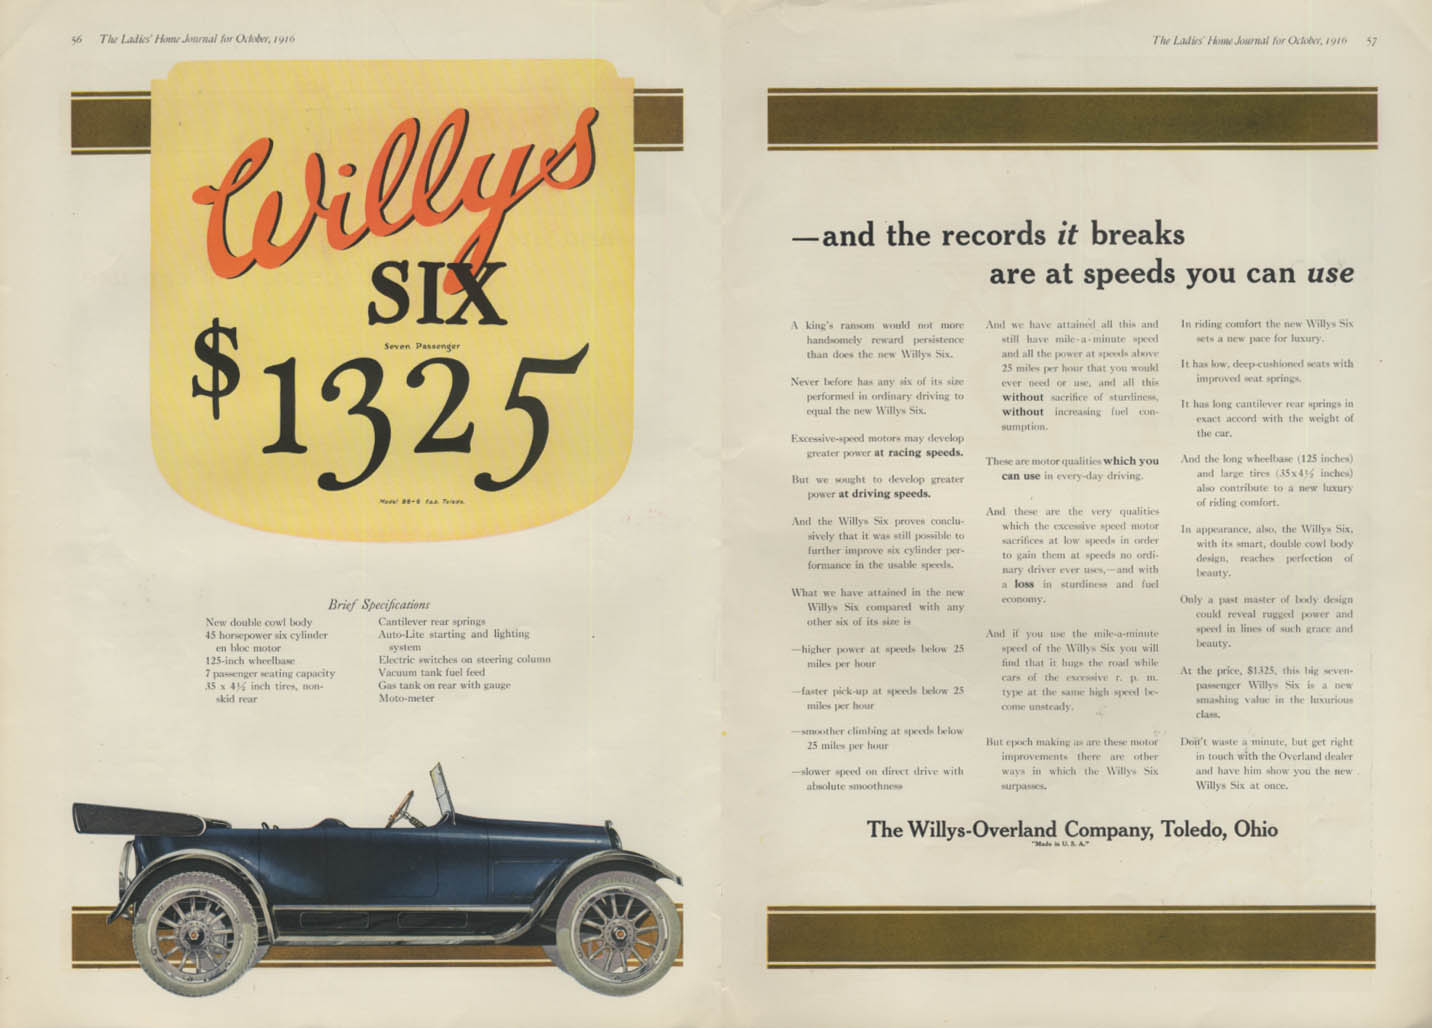 Image for The records it breaks are at speeds you can use Willys Six ad 1917 LHJ